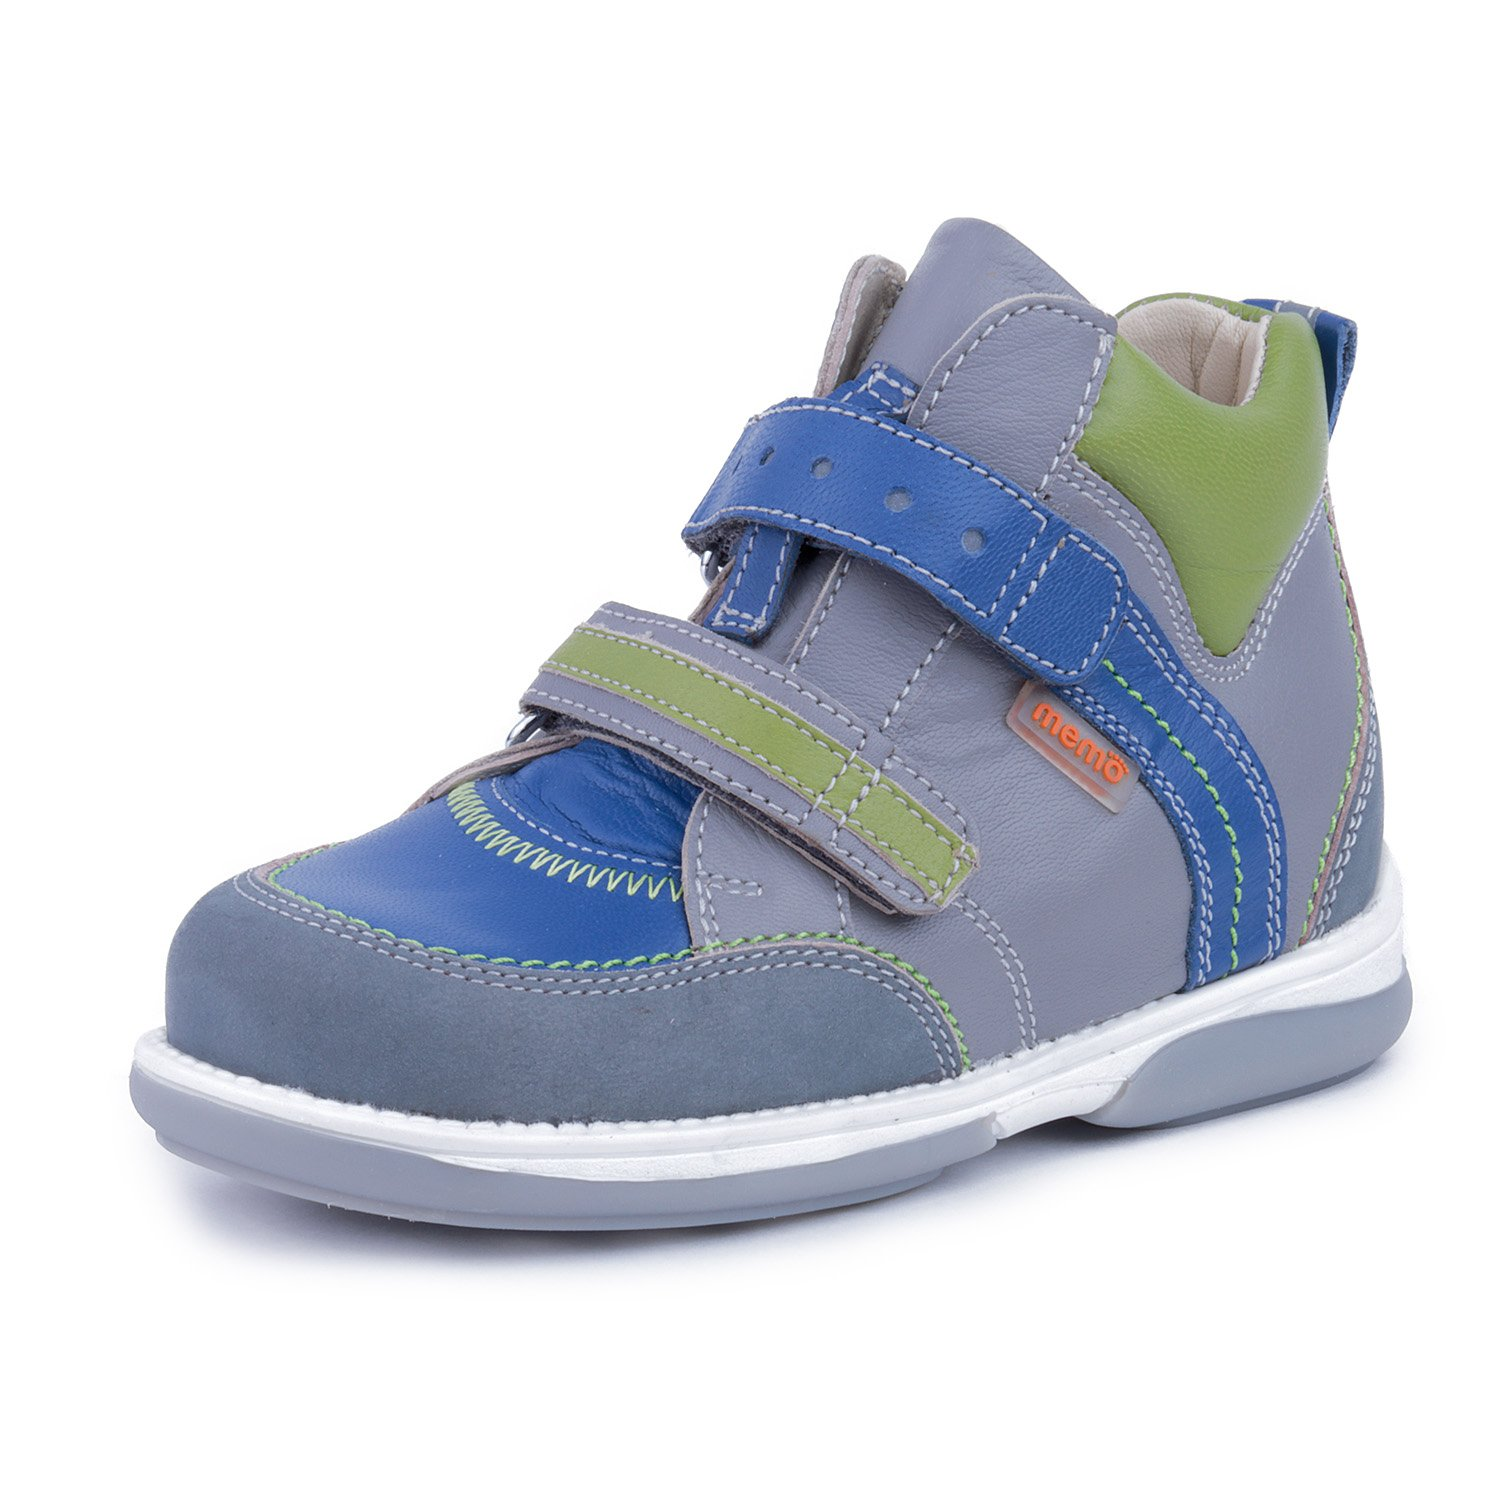 Memo Polo 3BC Diagnostic Sole Ankle Support Boy's Orthopedic Leather Sneaker, 26 (9T)